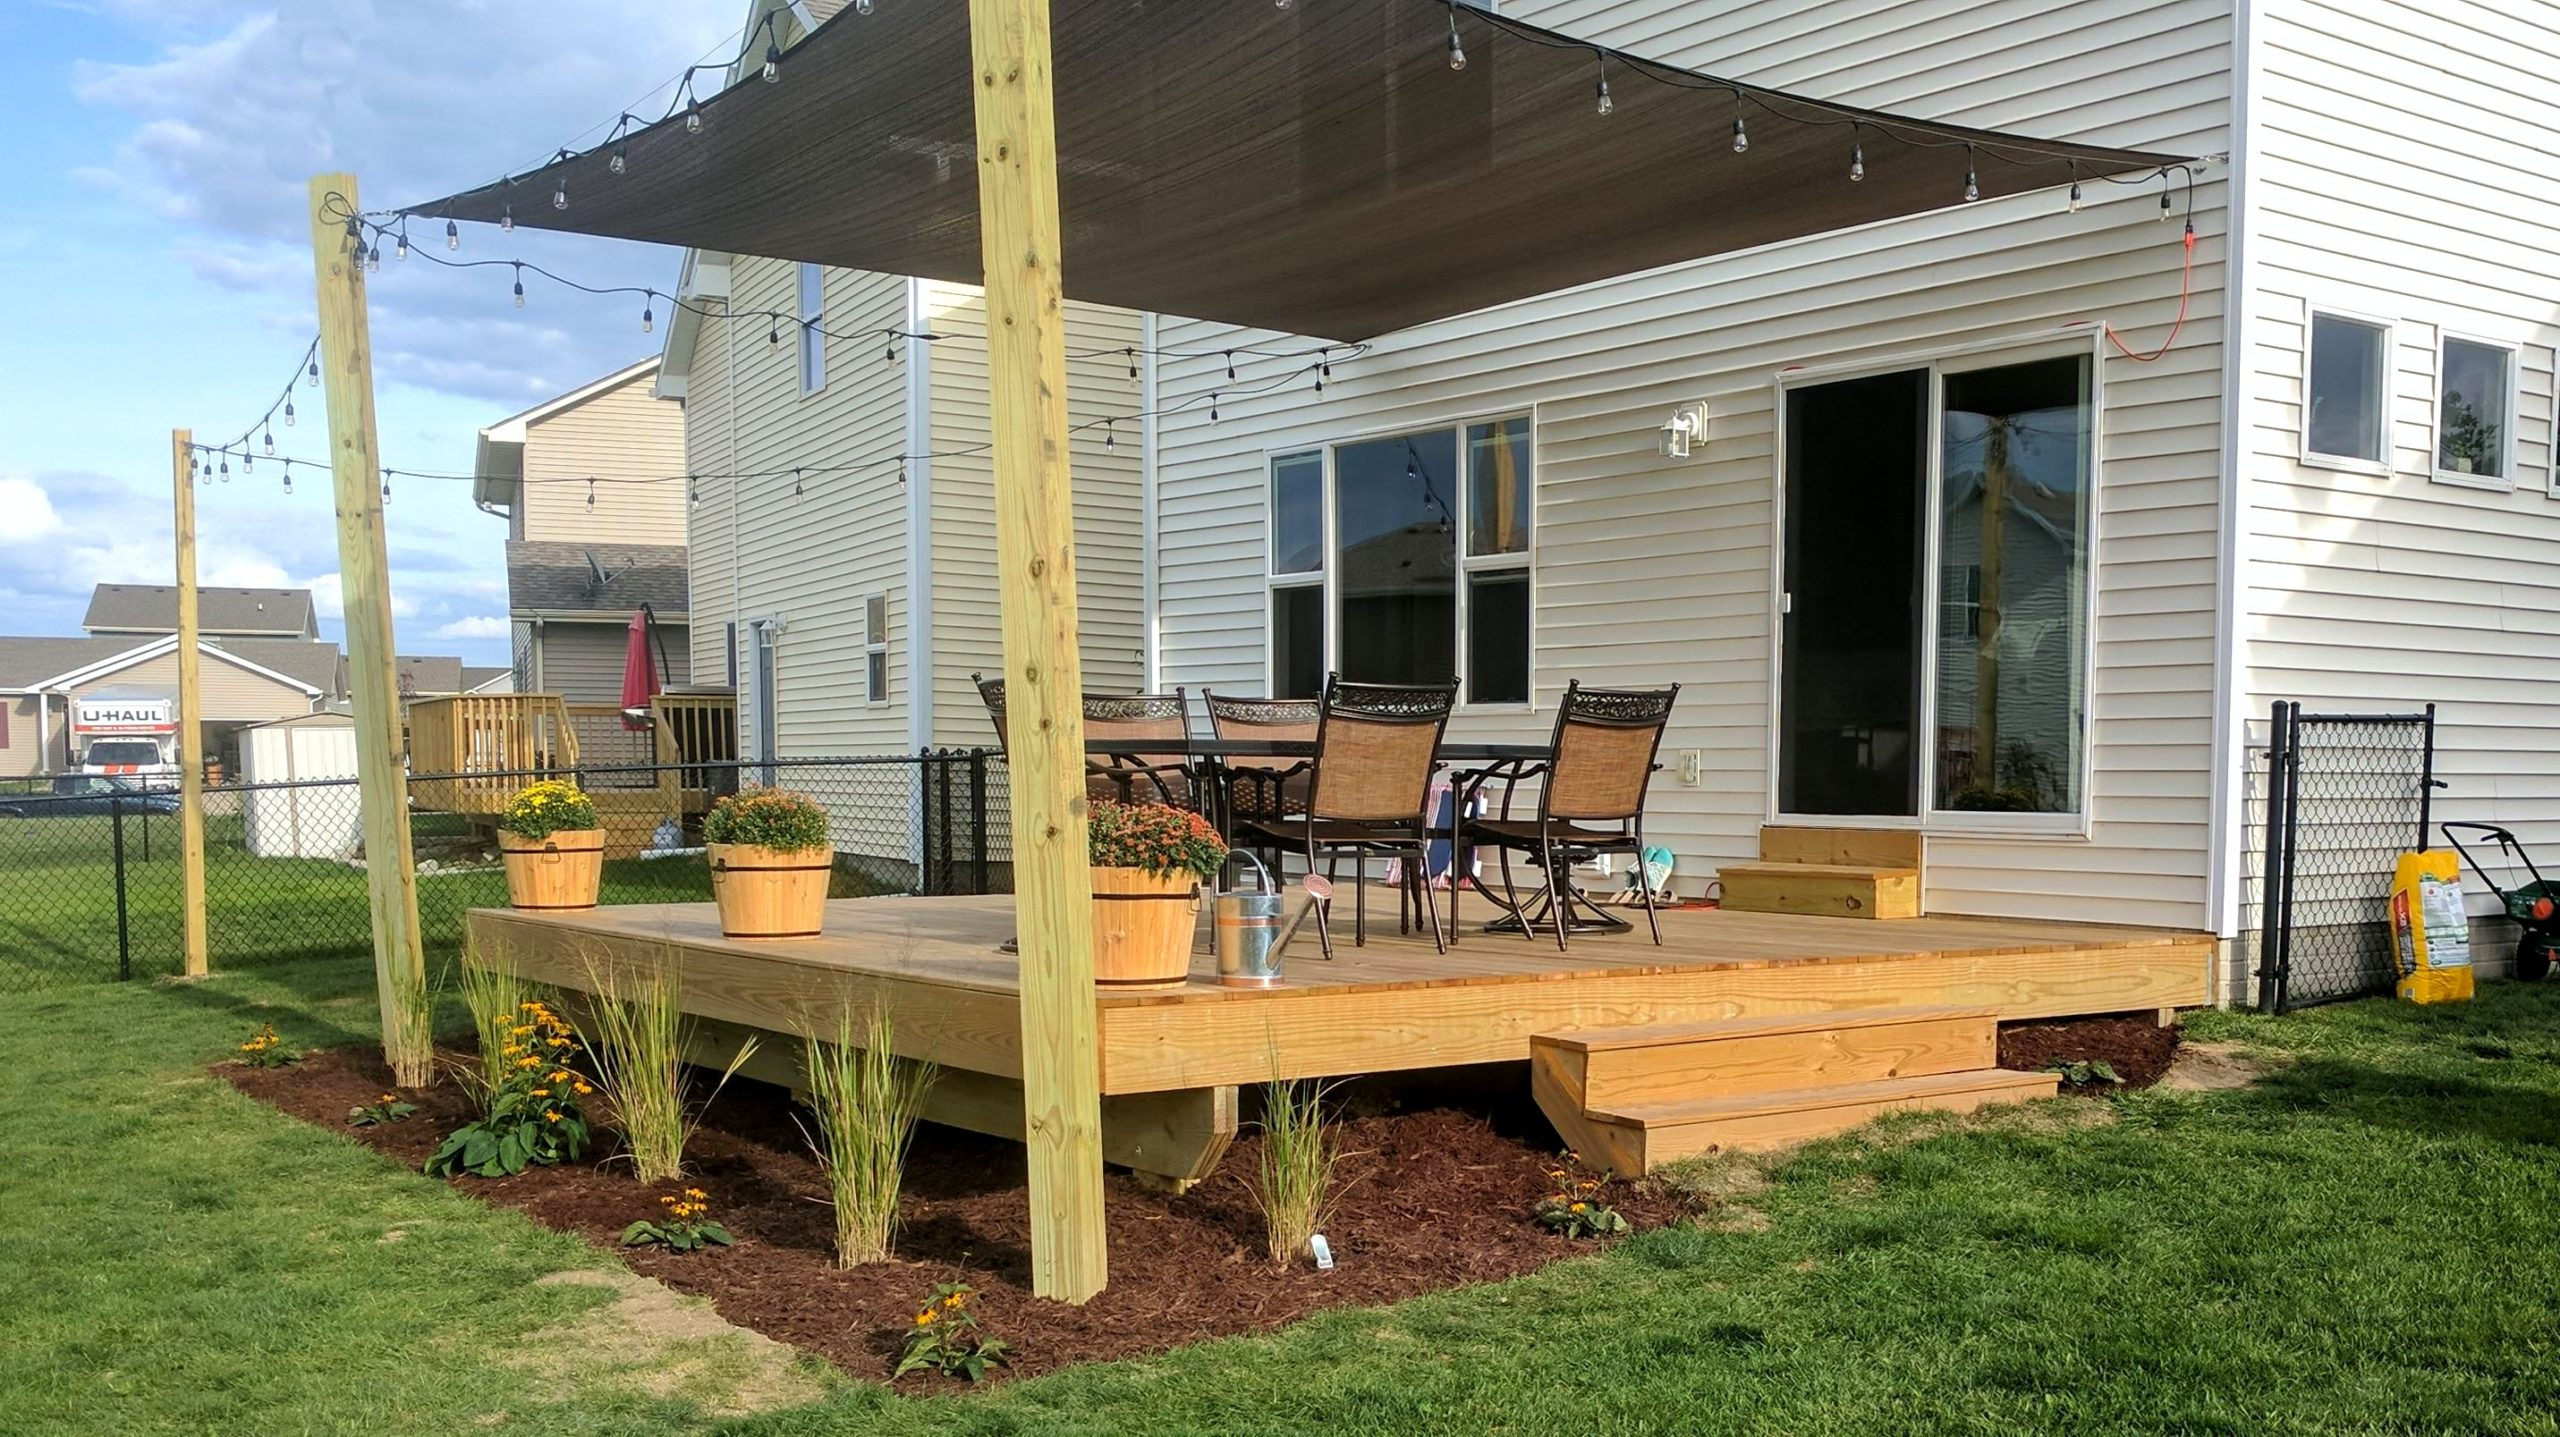 Sun Shade on New Deck | Des Moines Deck Builder - Deck and ... on Deck Over Patio Ideas id=12541